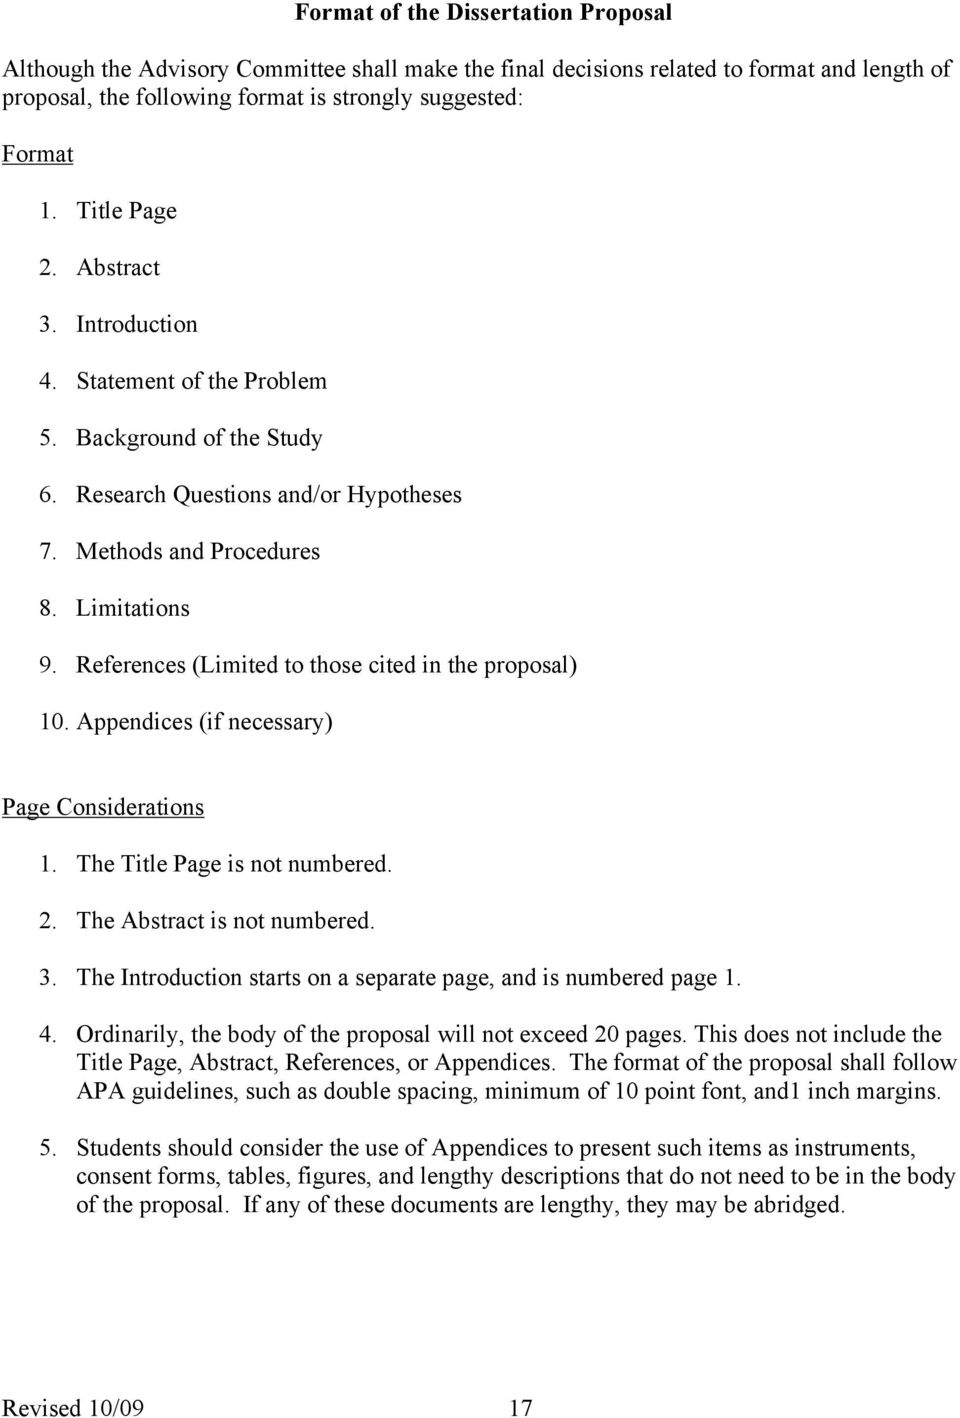 References (Limited to those cited in the proposal) 10. Appendices (if necessary) Page Considerations 1. The Title Page is not numbered. 2. The Abstract is not numbered. 3.